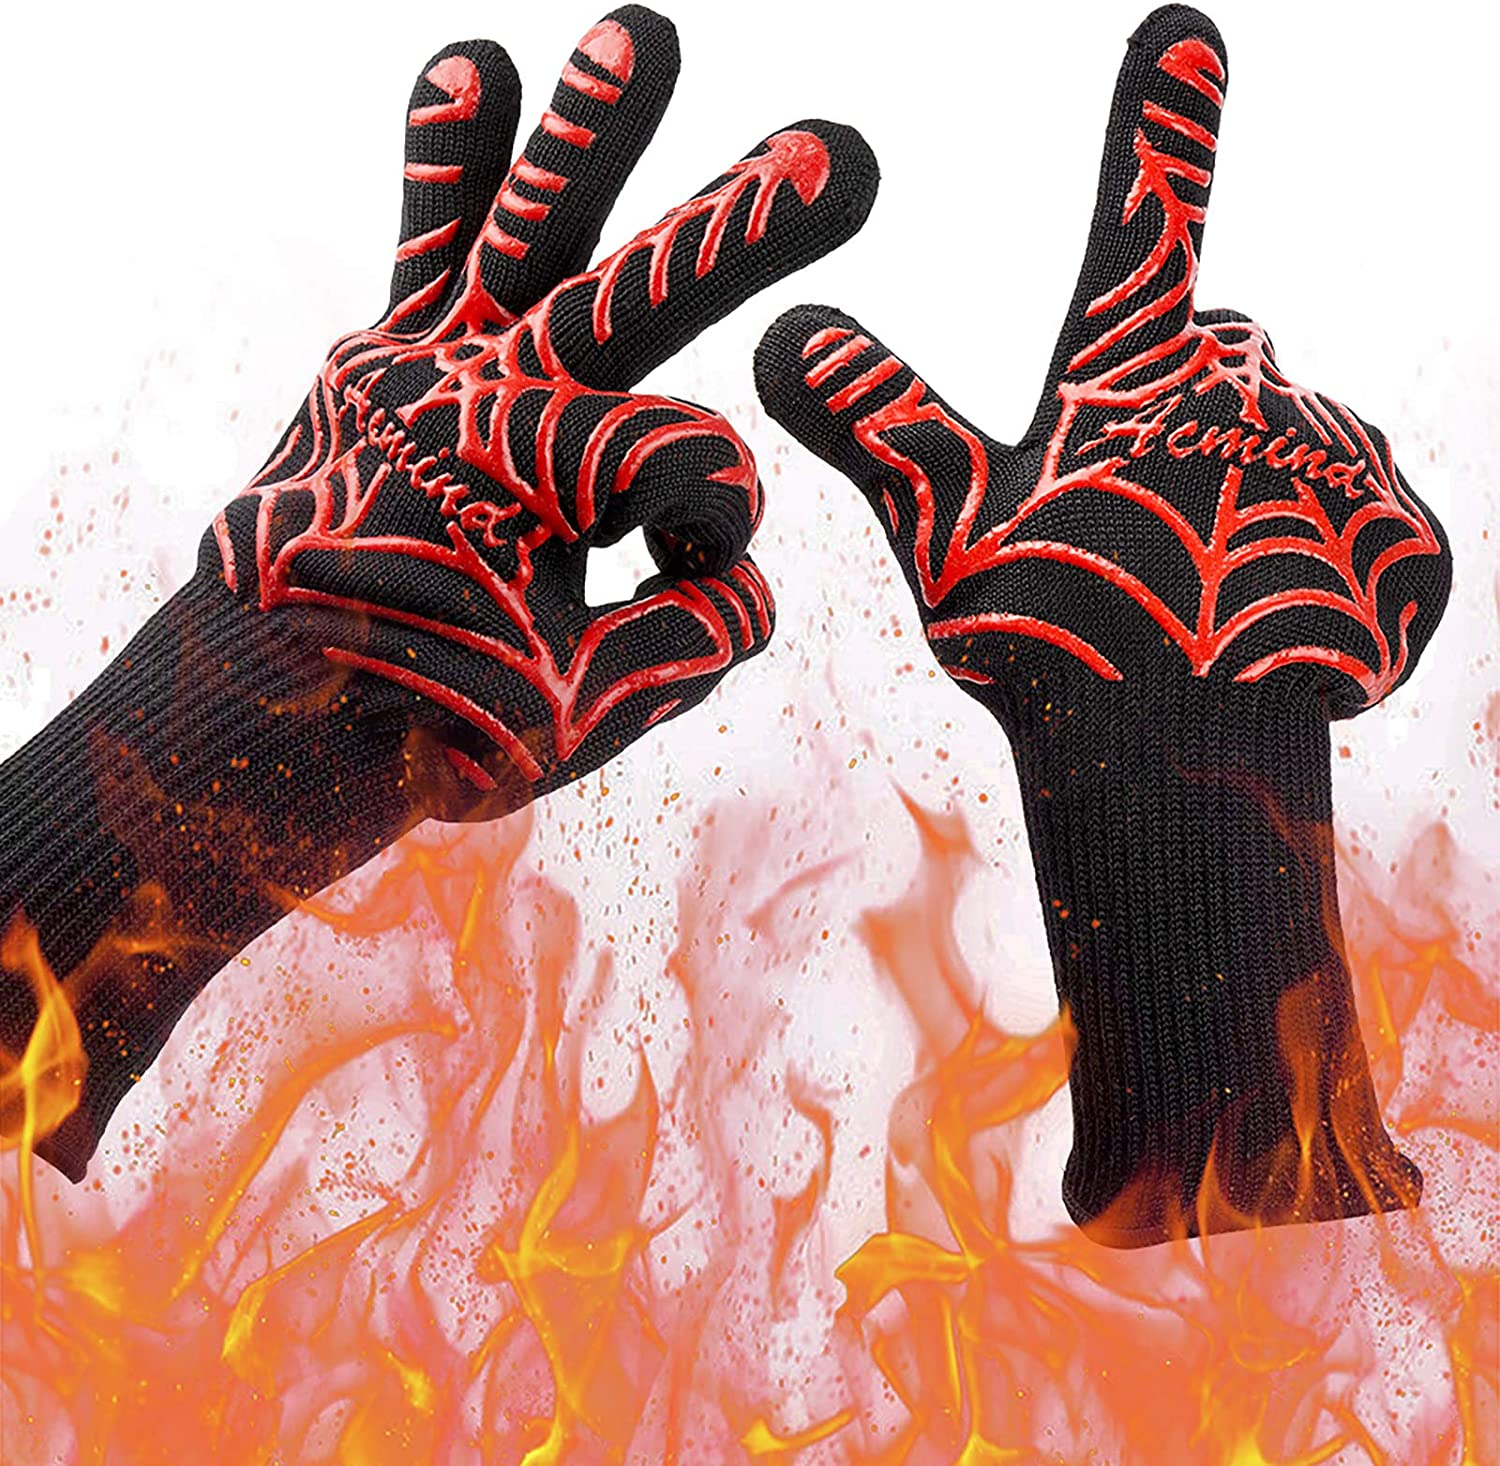 1472°F Silicone Extreme Heat Resistant Cooking BBQ Oven Mitt Hot Grilling Gloves